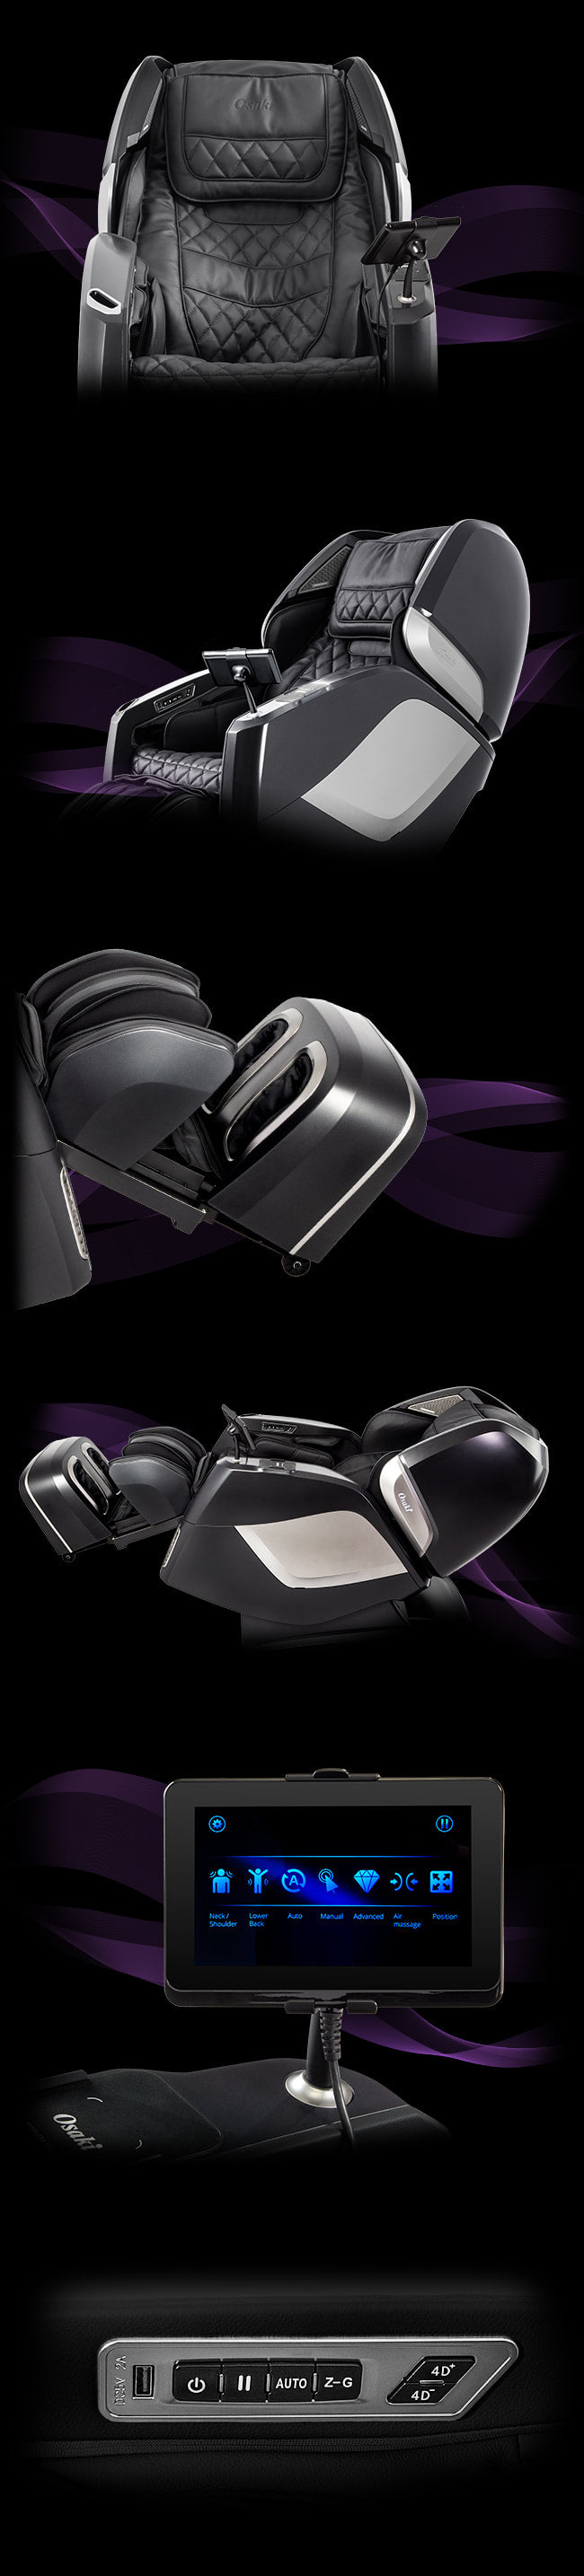 Image montage of Osaki Pro Maestro Limited Edition Chair Massager